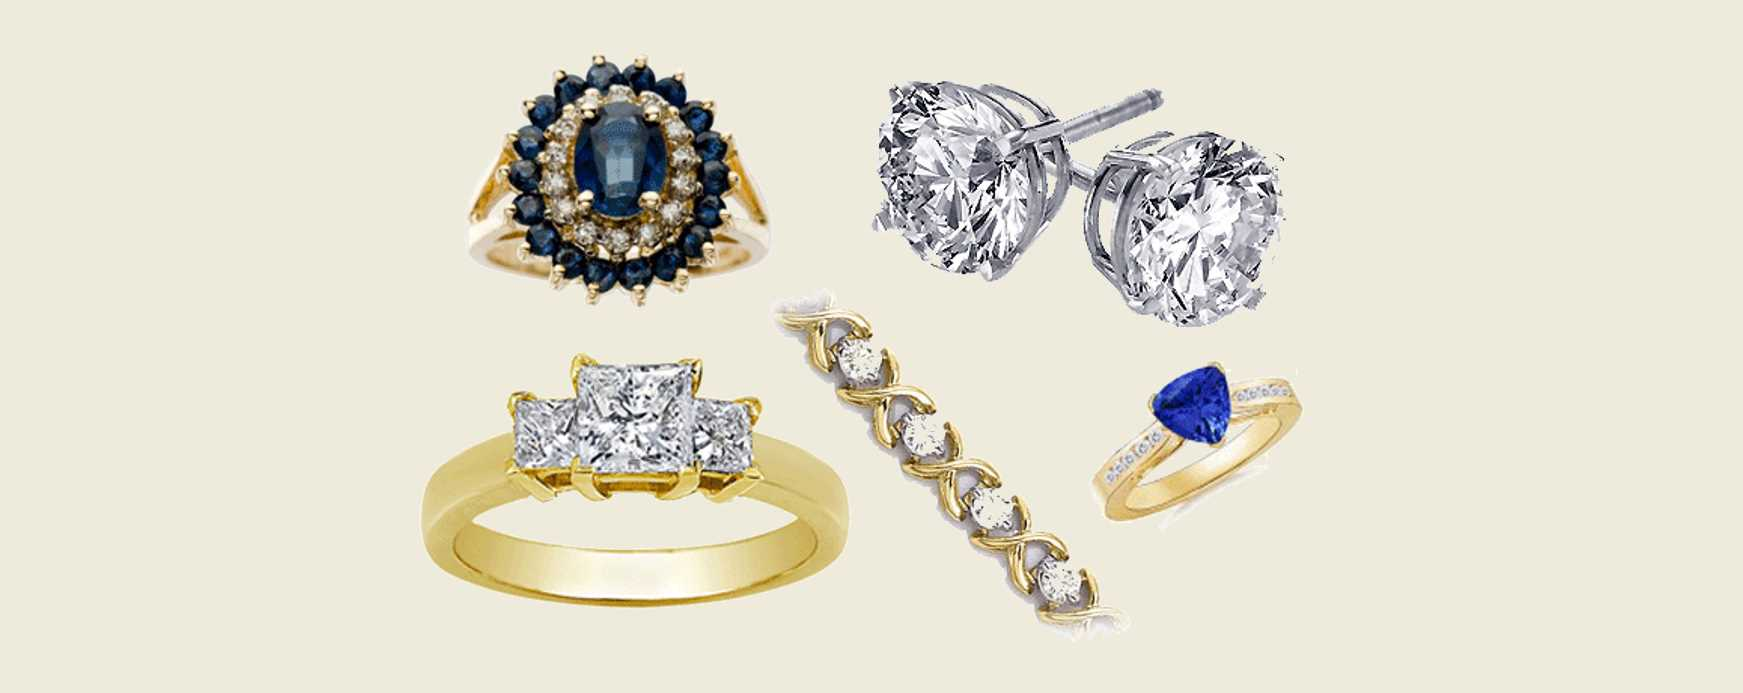 estate exchange jewelry usa diamond jewellery product archives category